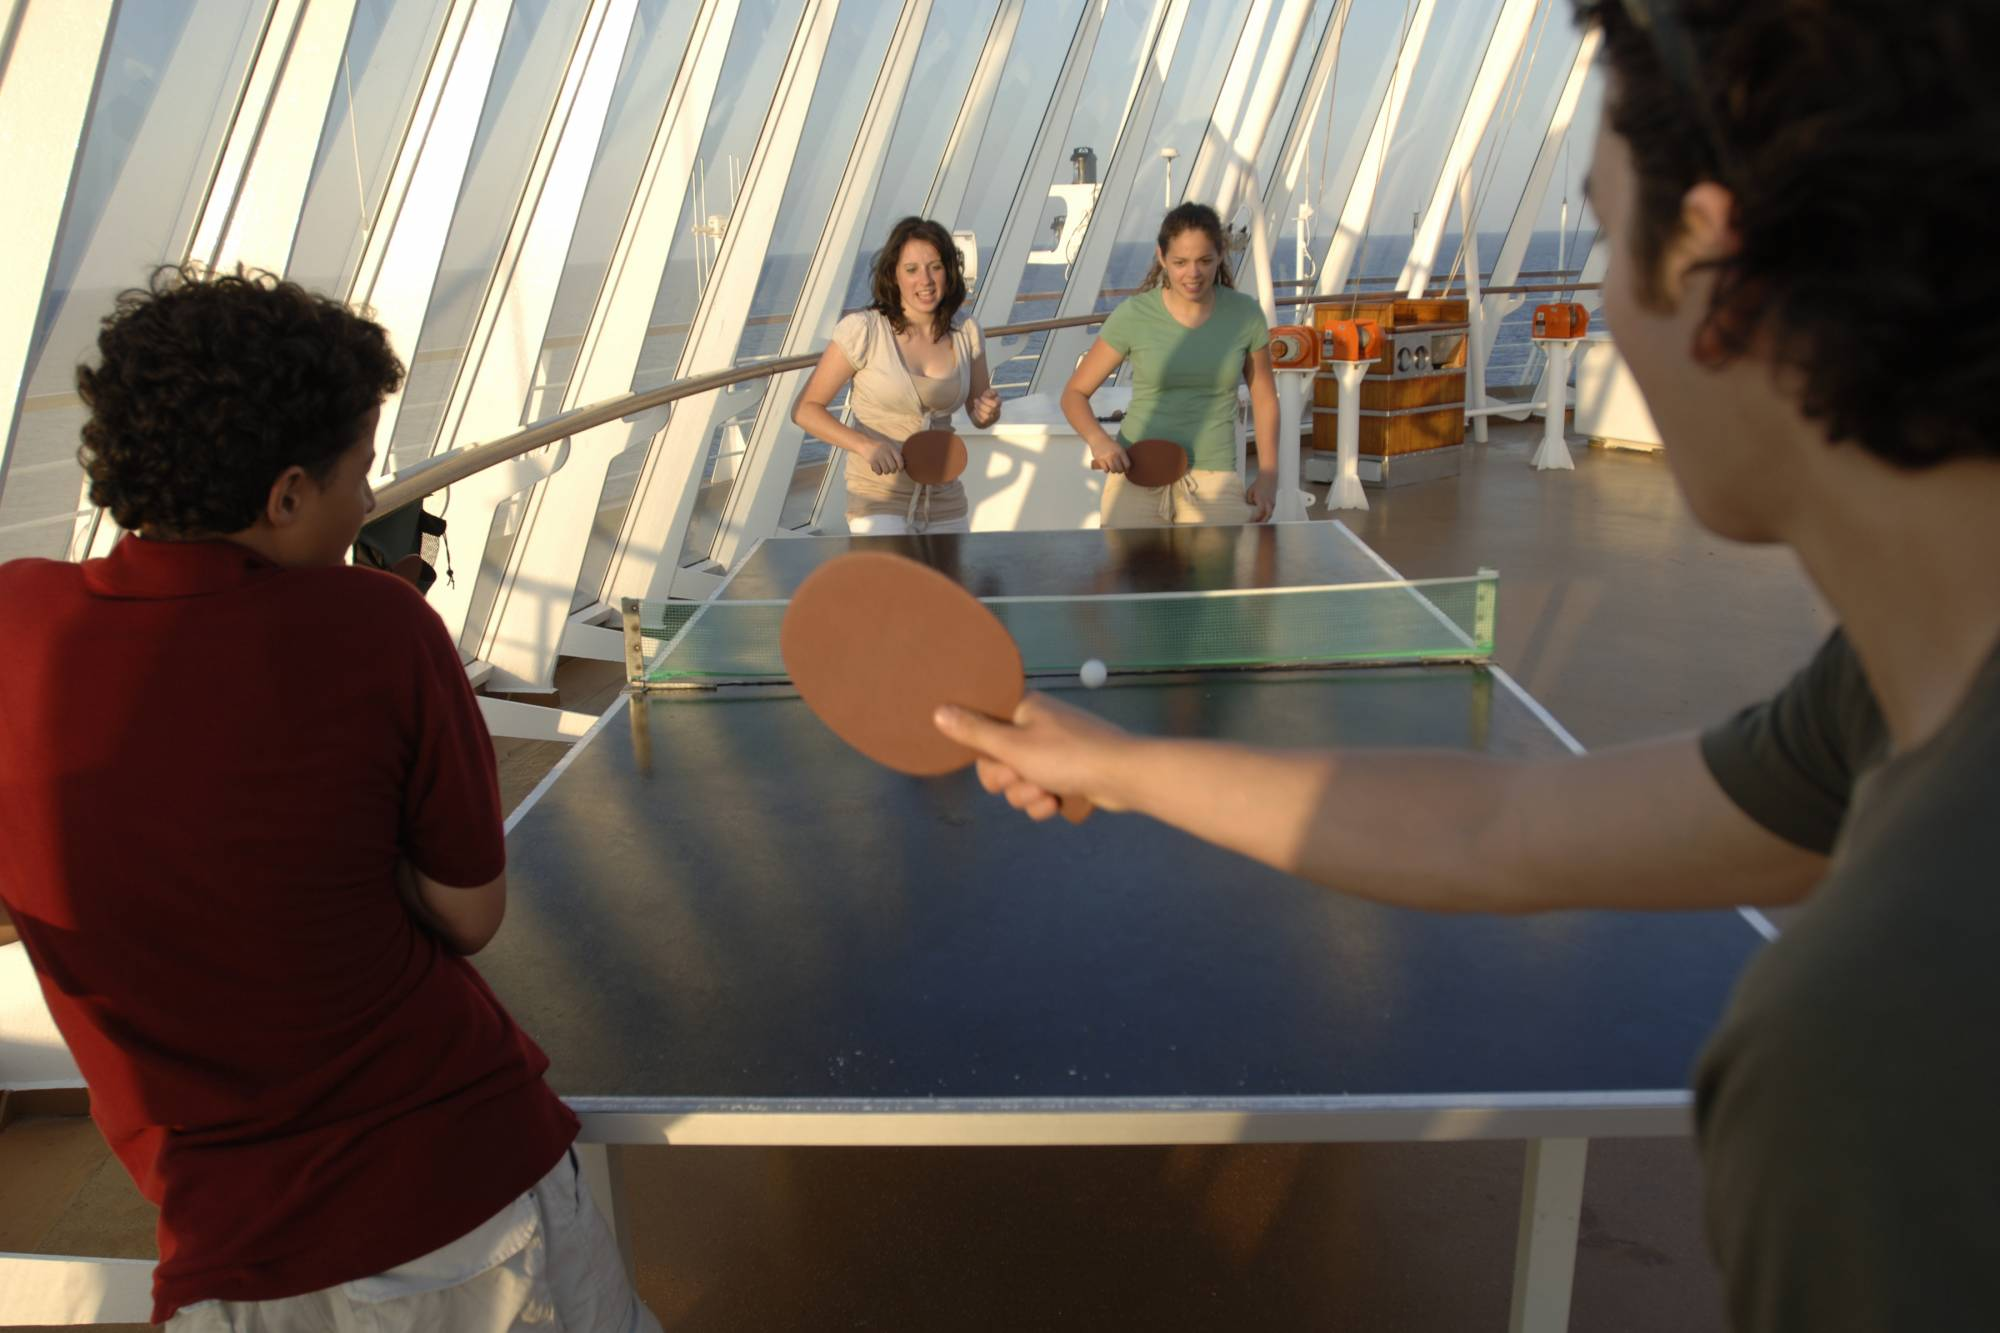 Disney Cruise - Ping Pong at Sea